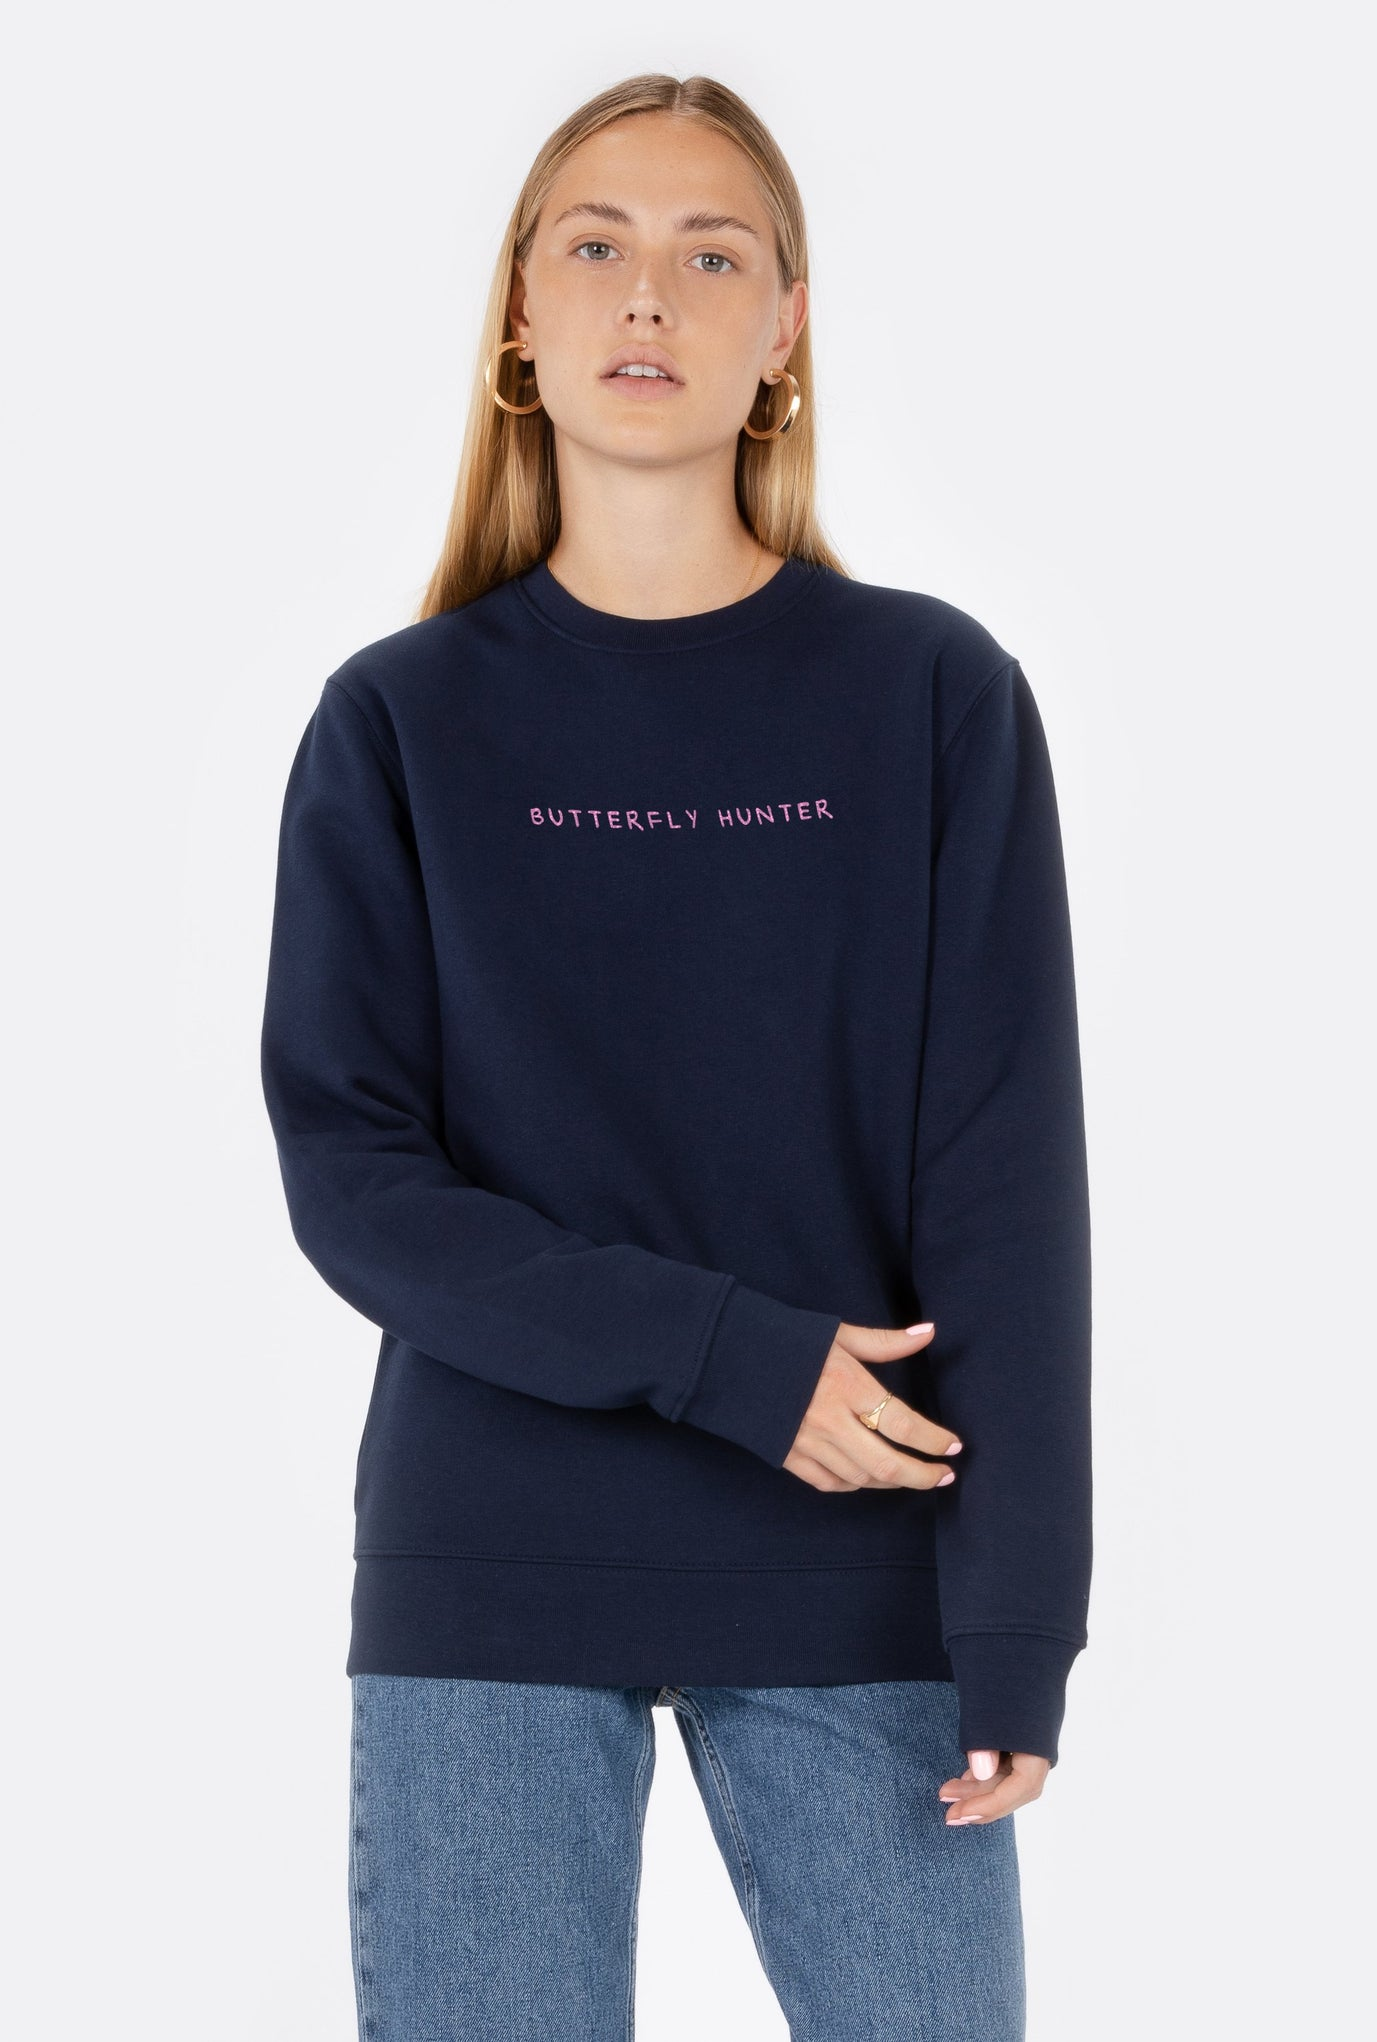 Crewneck Butterfly Hunter - Embroidered